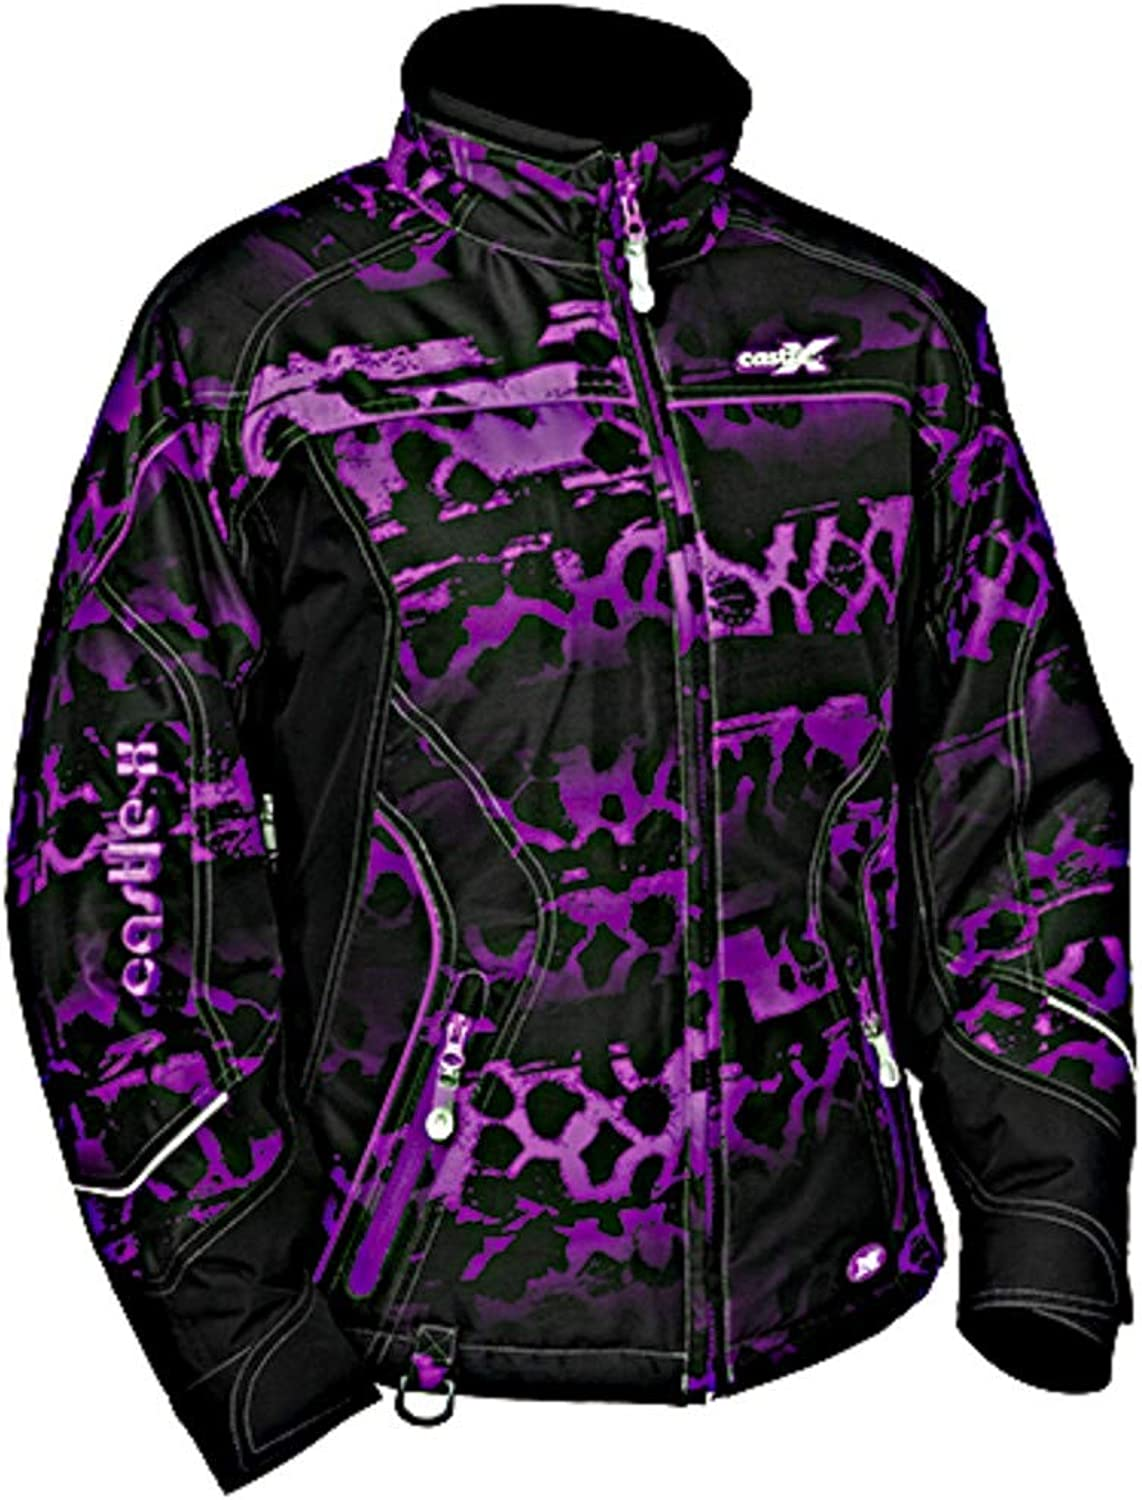 Castle X Jacket  Women Twist Vivid 1w